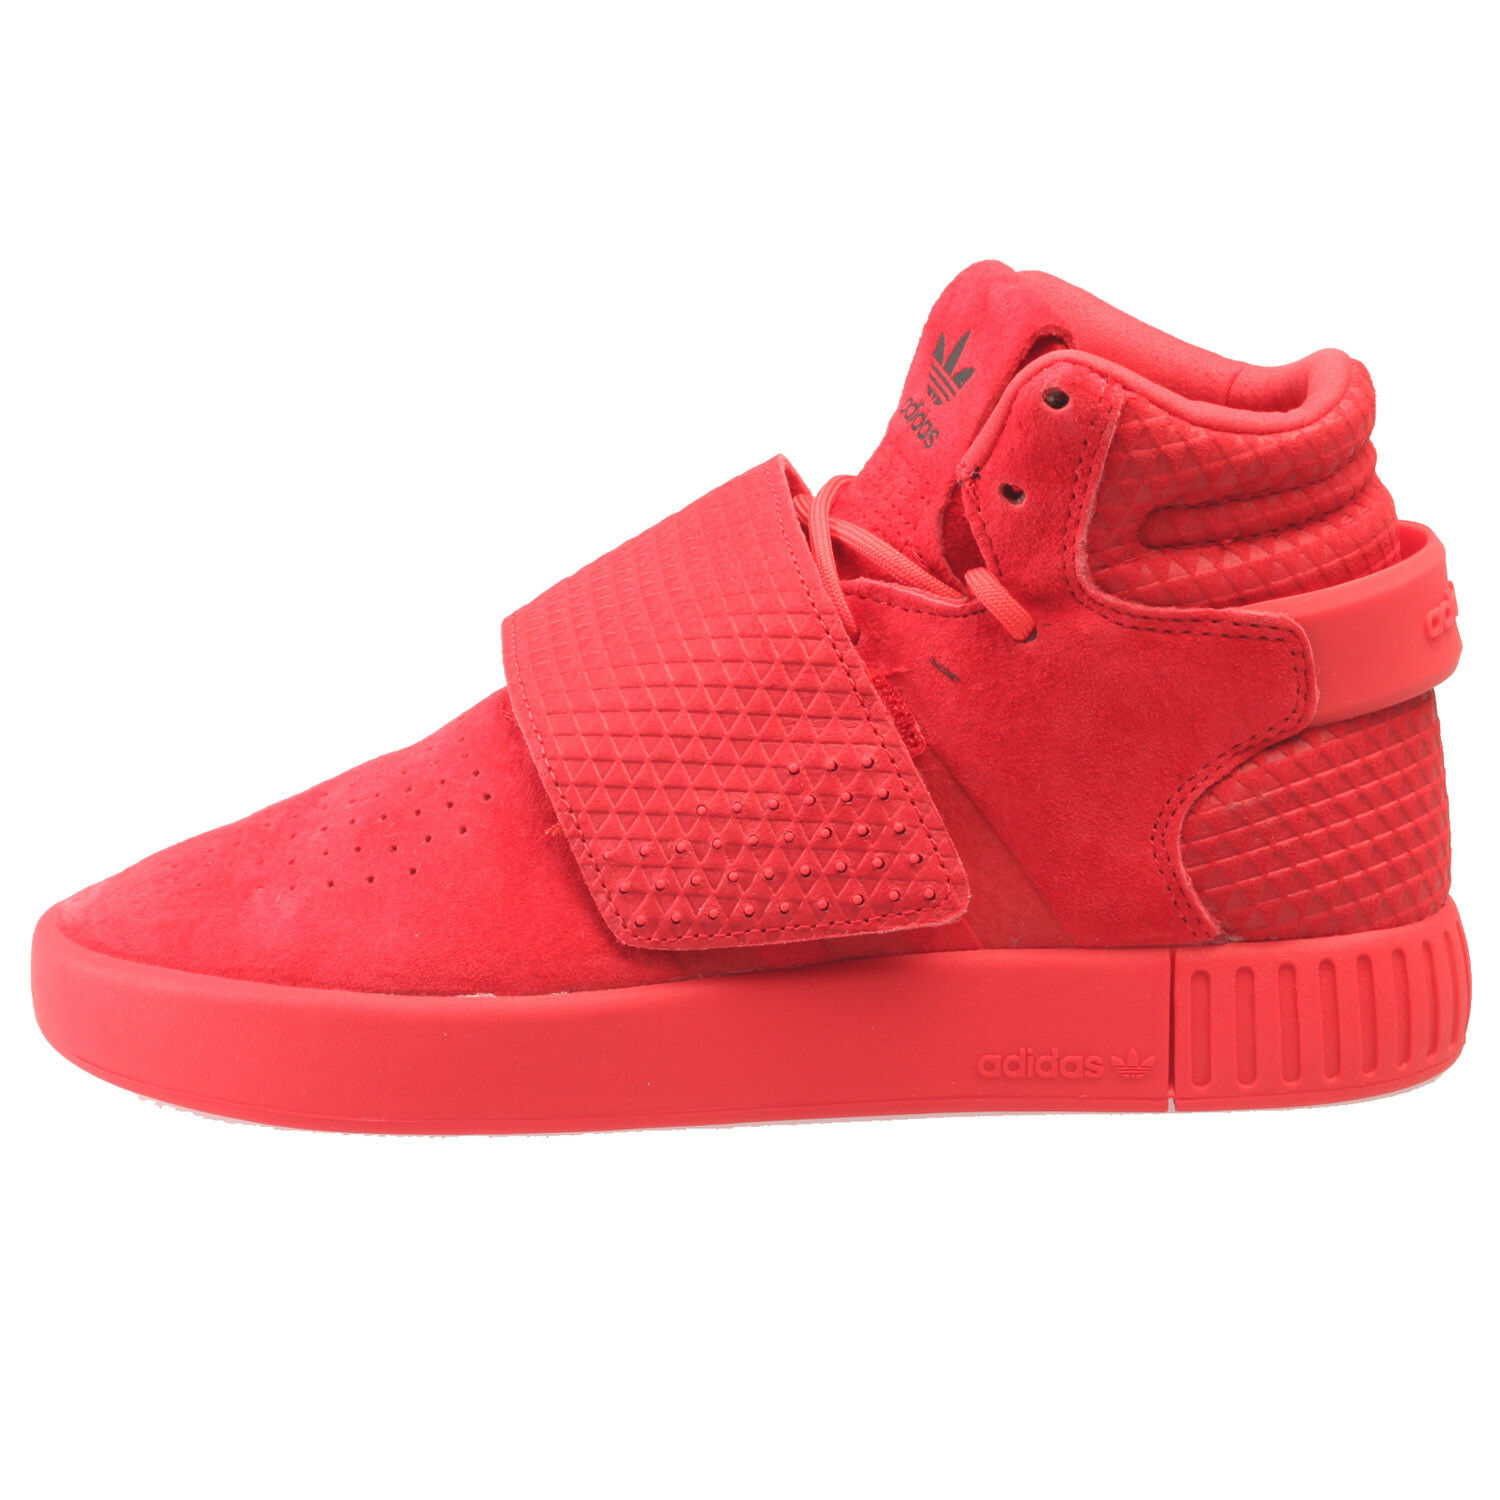 low priced 508df 23635 Adidas Tubular Invader Triple Red Big Kids S80477 Ray Red Shoes Youth Size 6